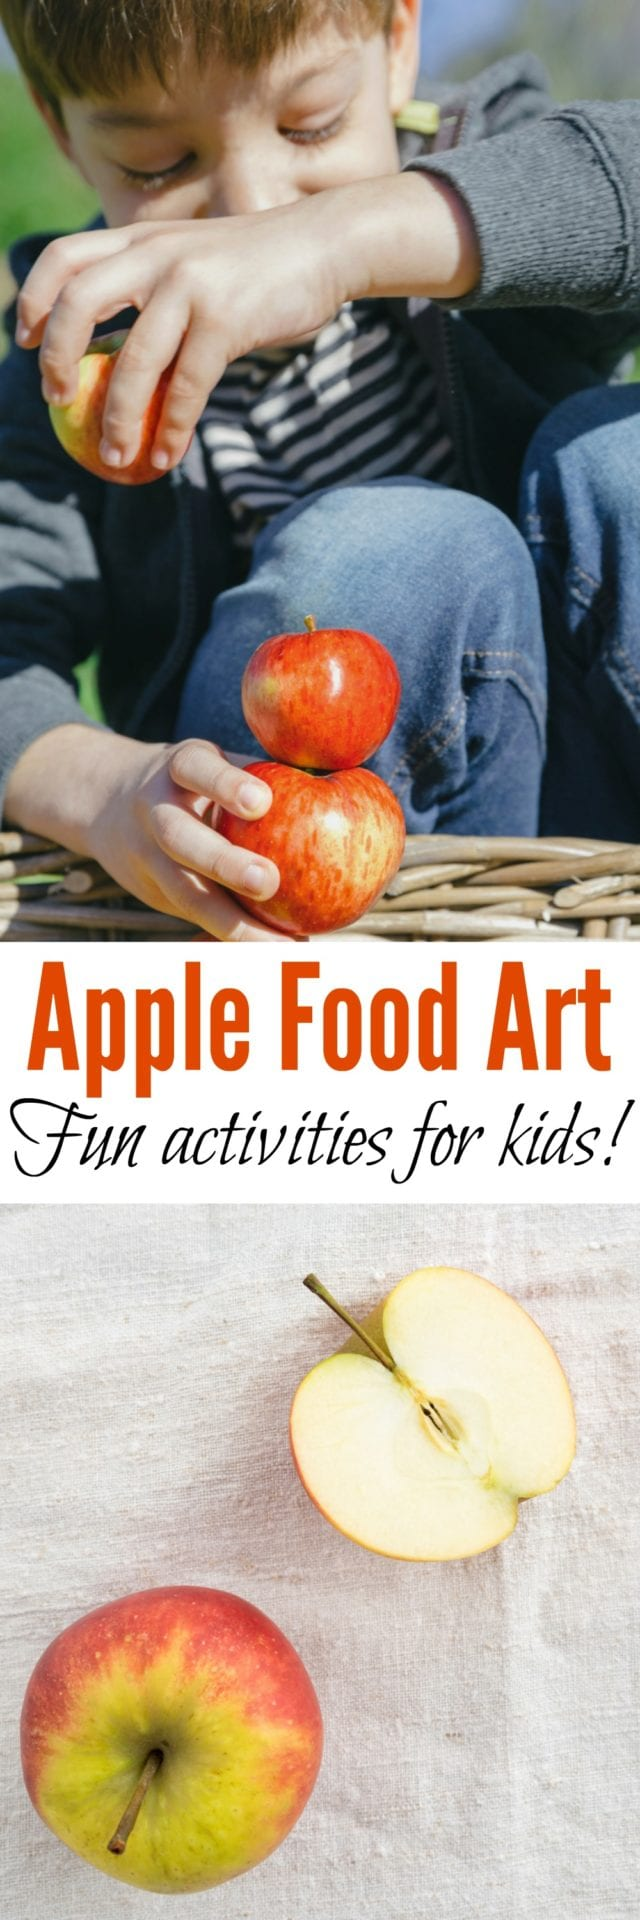 Apple Food Art For Kids- Four fun and different apple-themed activities, perfect for preschool, homeschool, or after-school! Fun for all ages- even the adults. You haven't lived until you've made an apple volcano! #kidsactivities #apples #fall #science #experiments #STEM